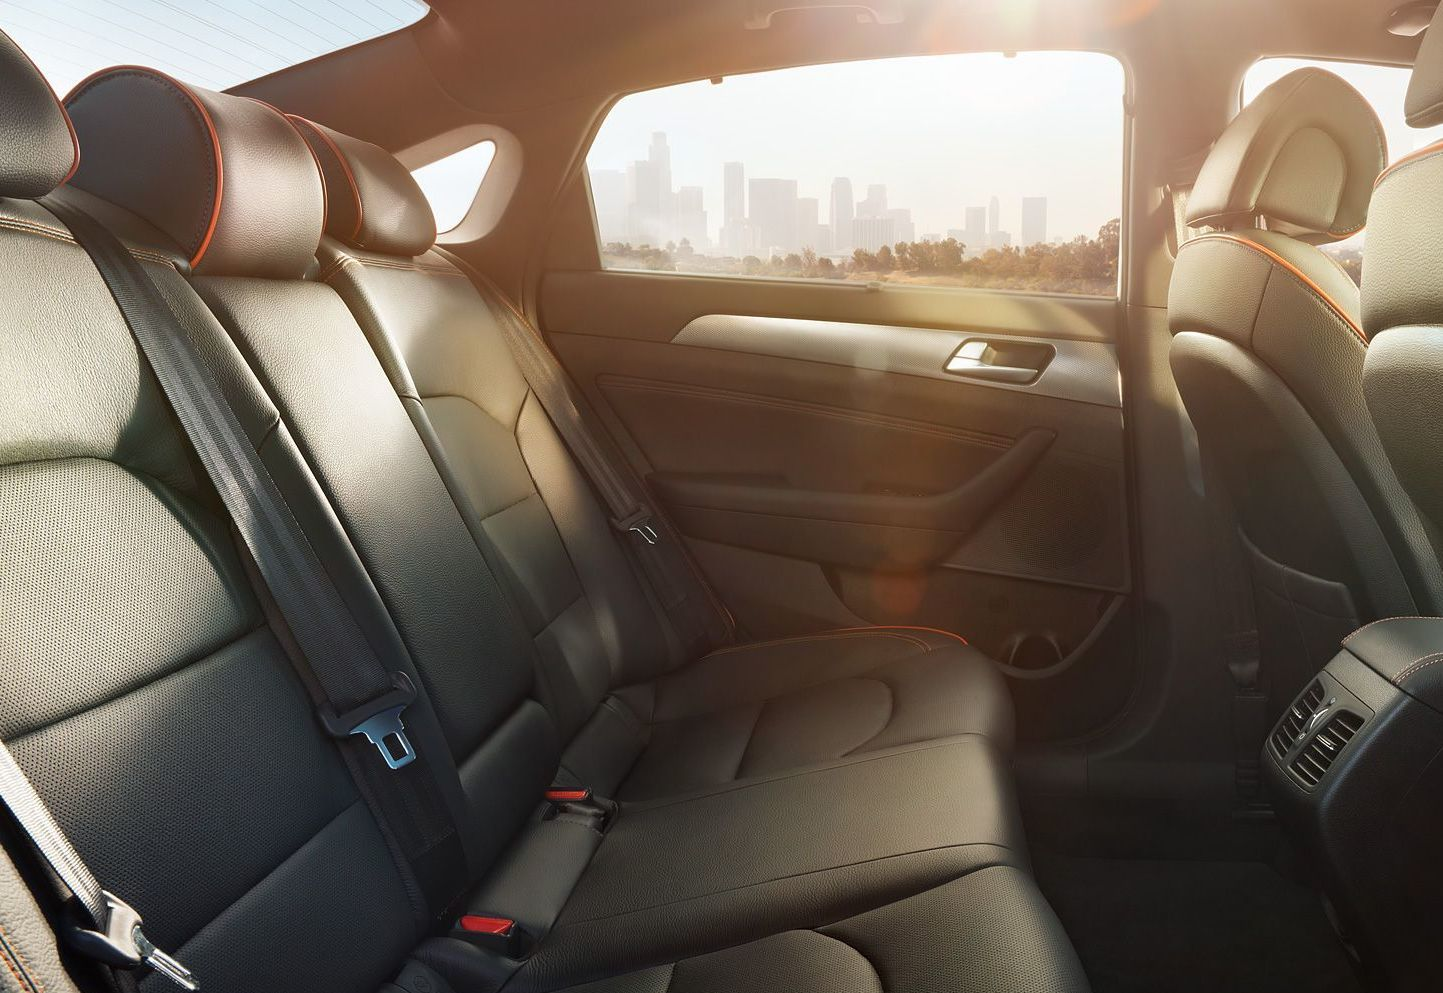 2016 Sonata Interior with Spacious Rear Seating